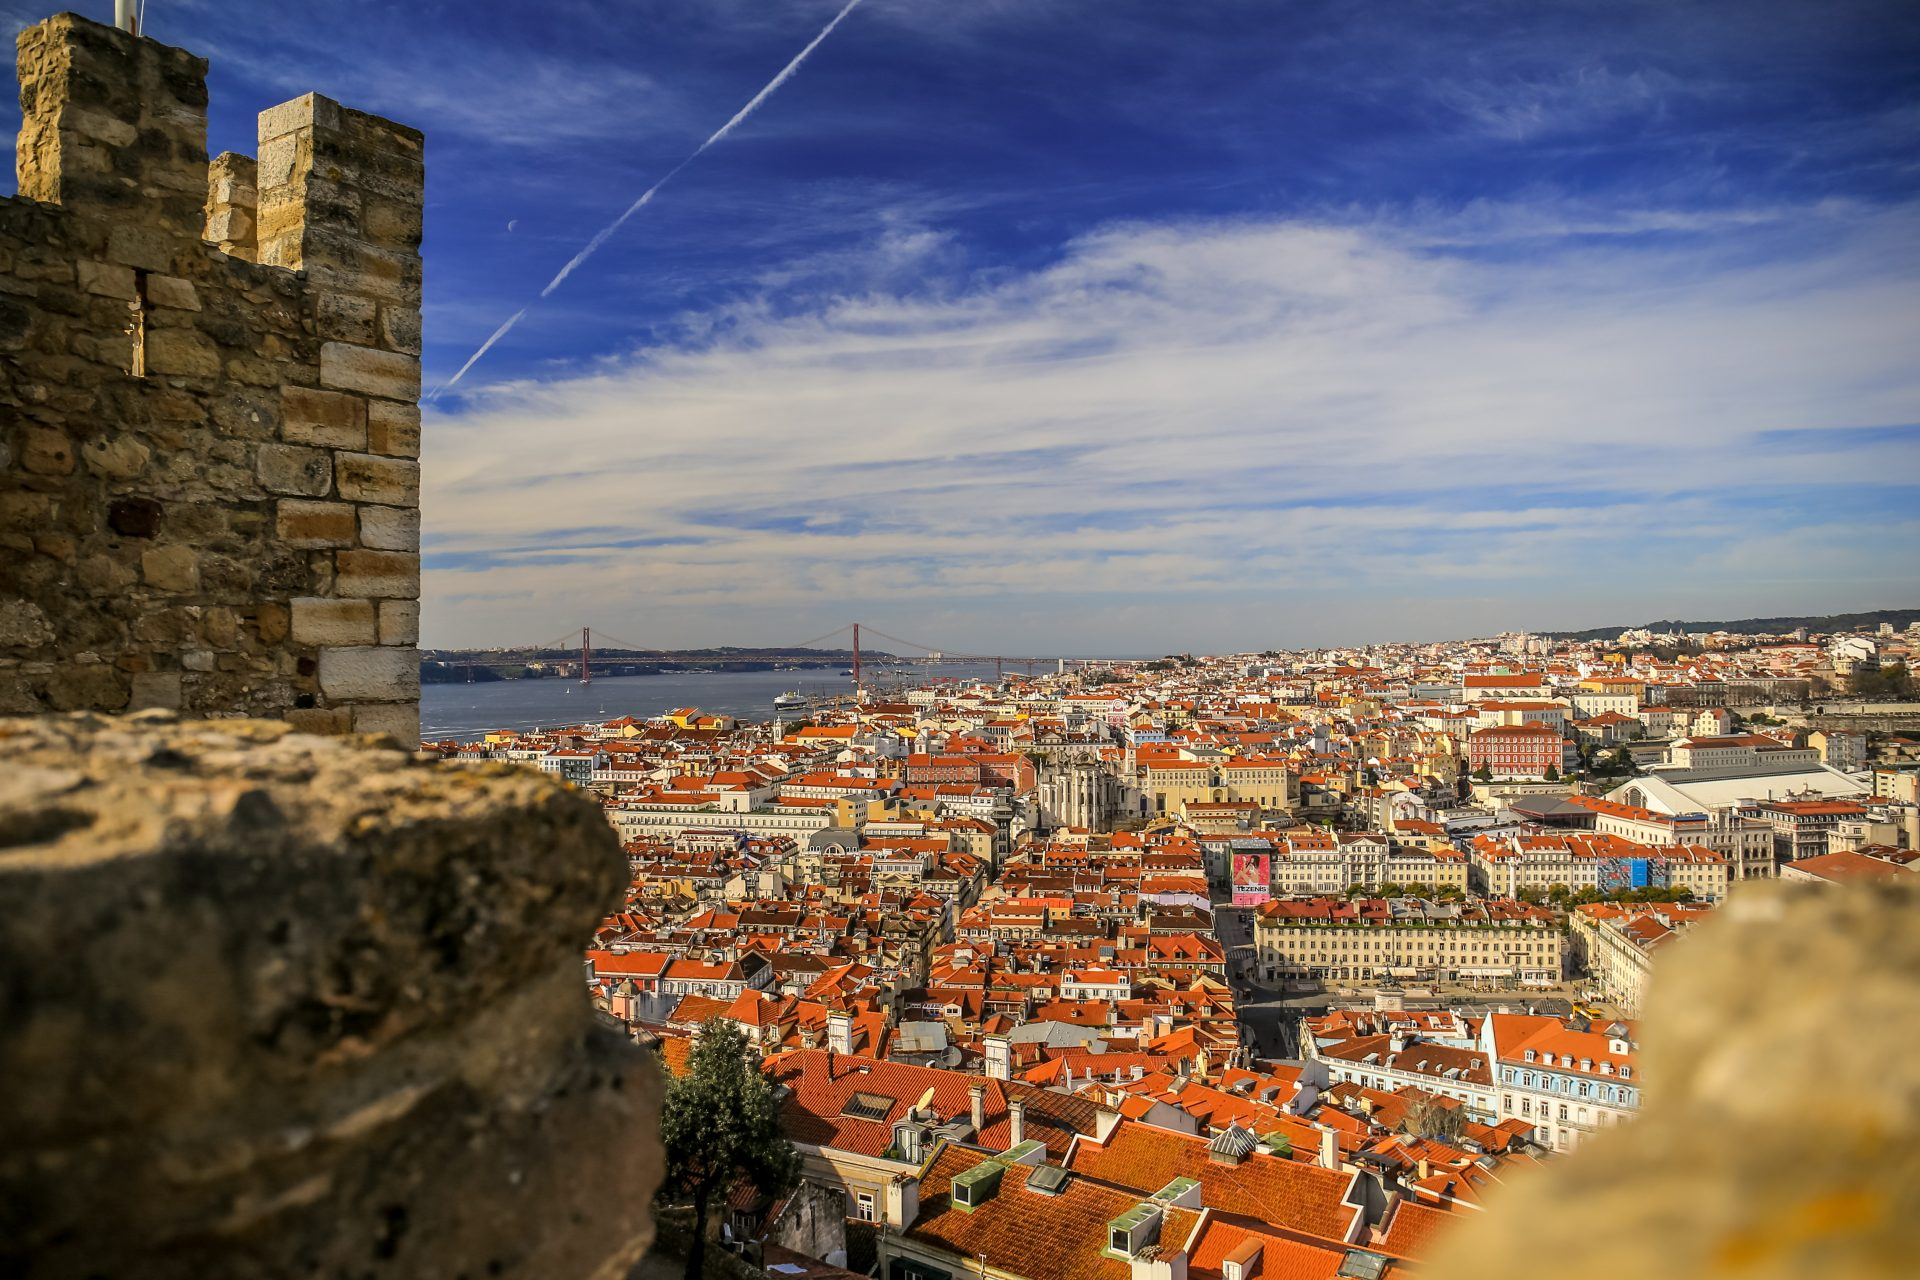 Panorama of Lisbon from Saint George Castle